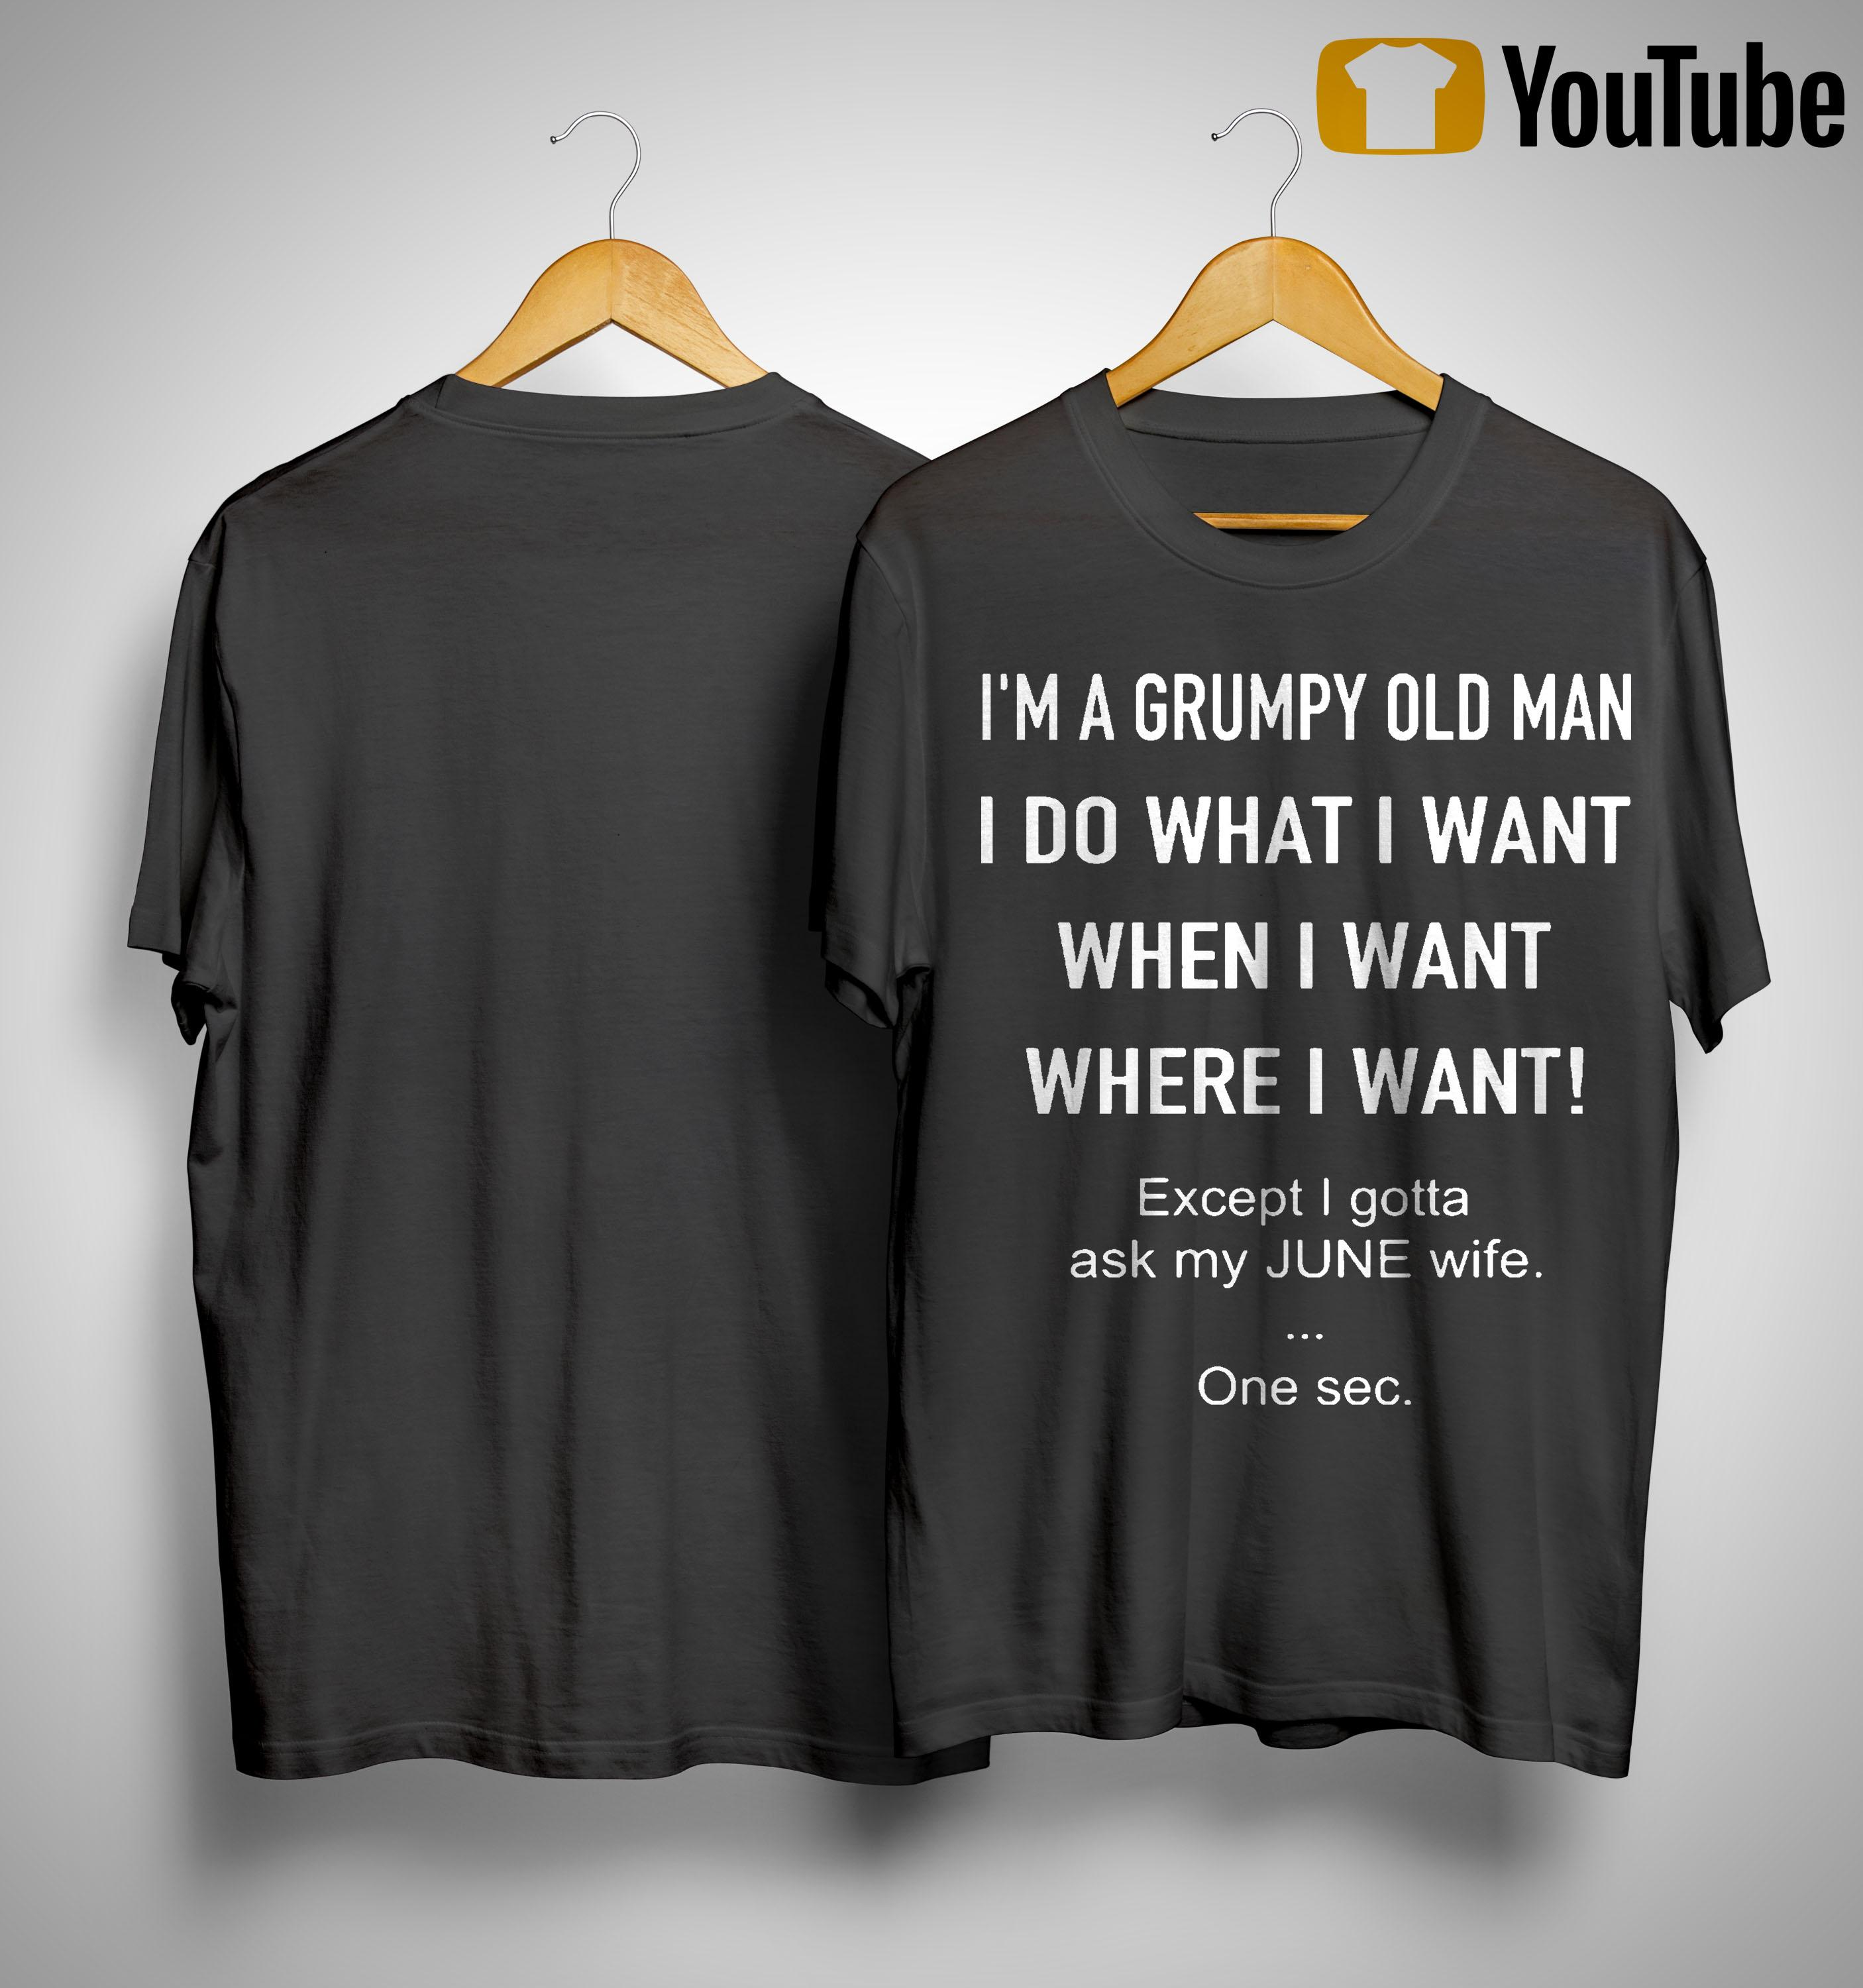 I'm A Grumpy Old Man I Do What I Want When I Want Except Ask My June Wife Shirt